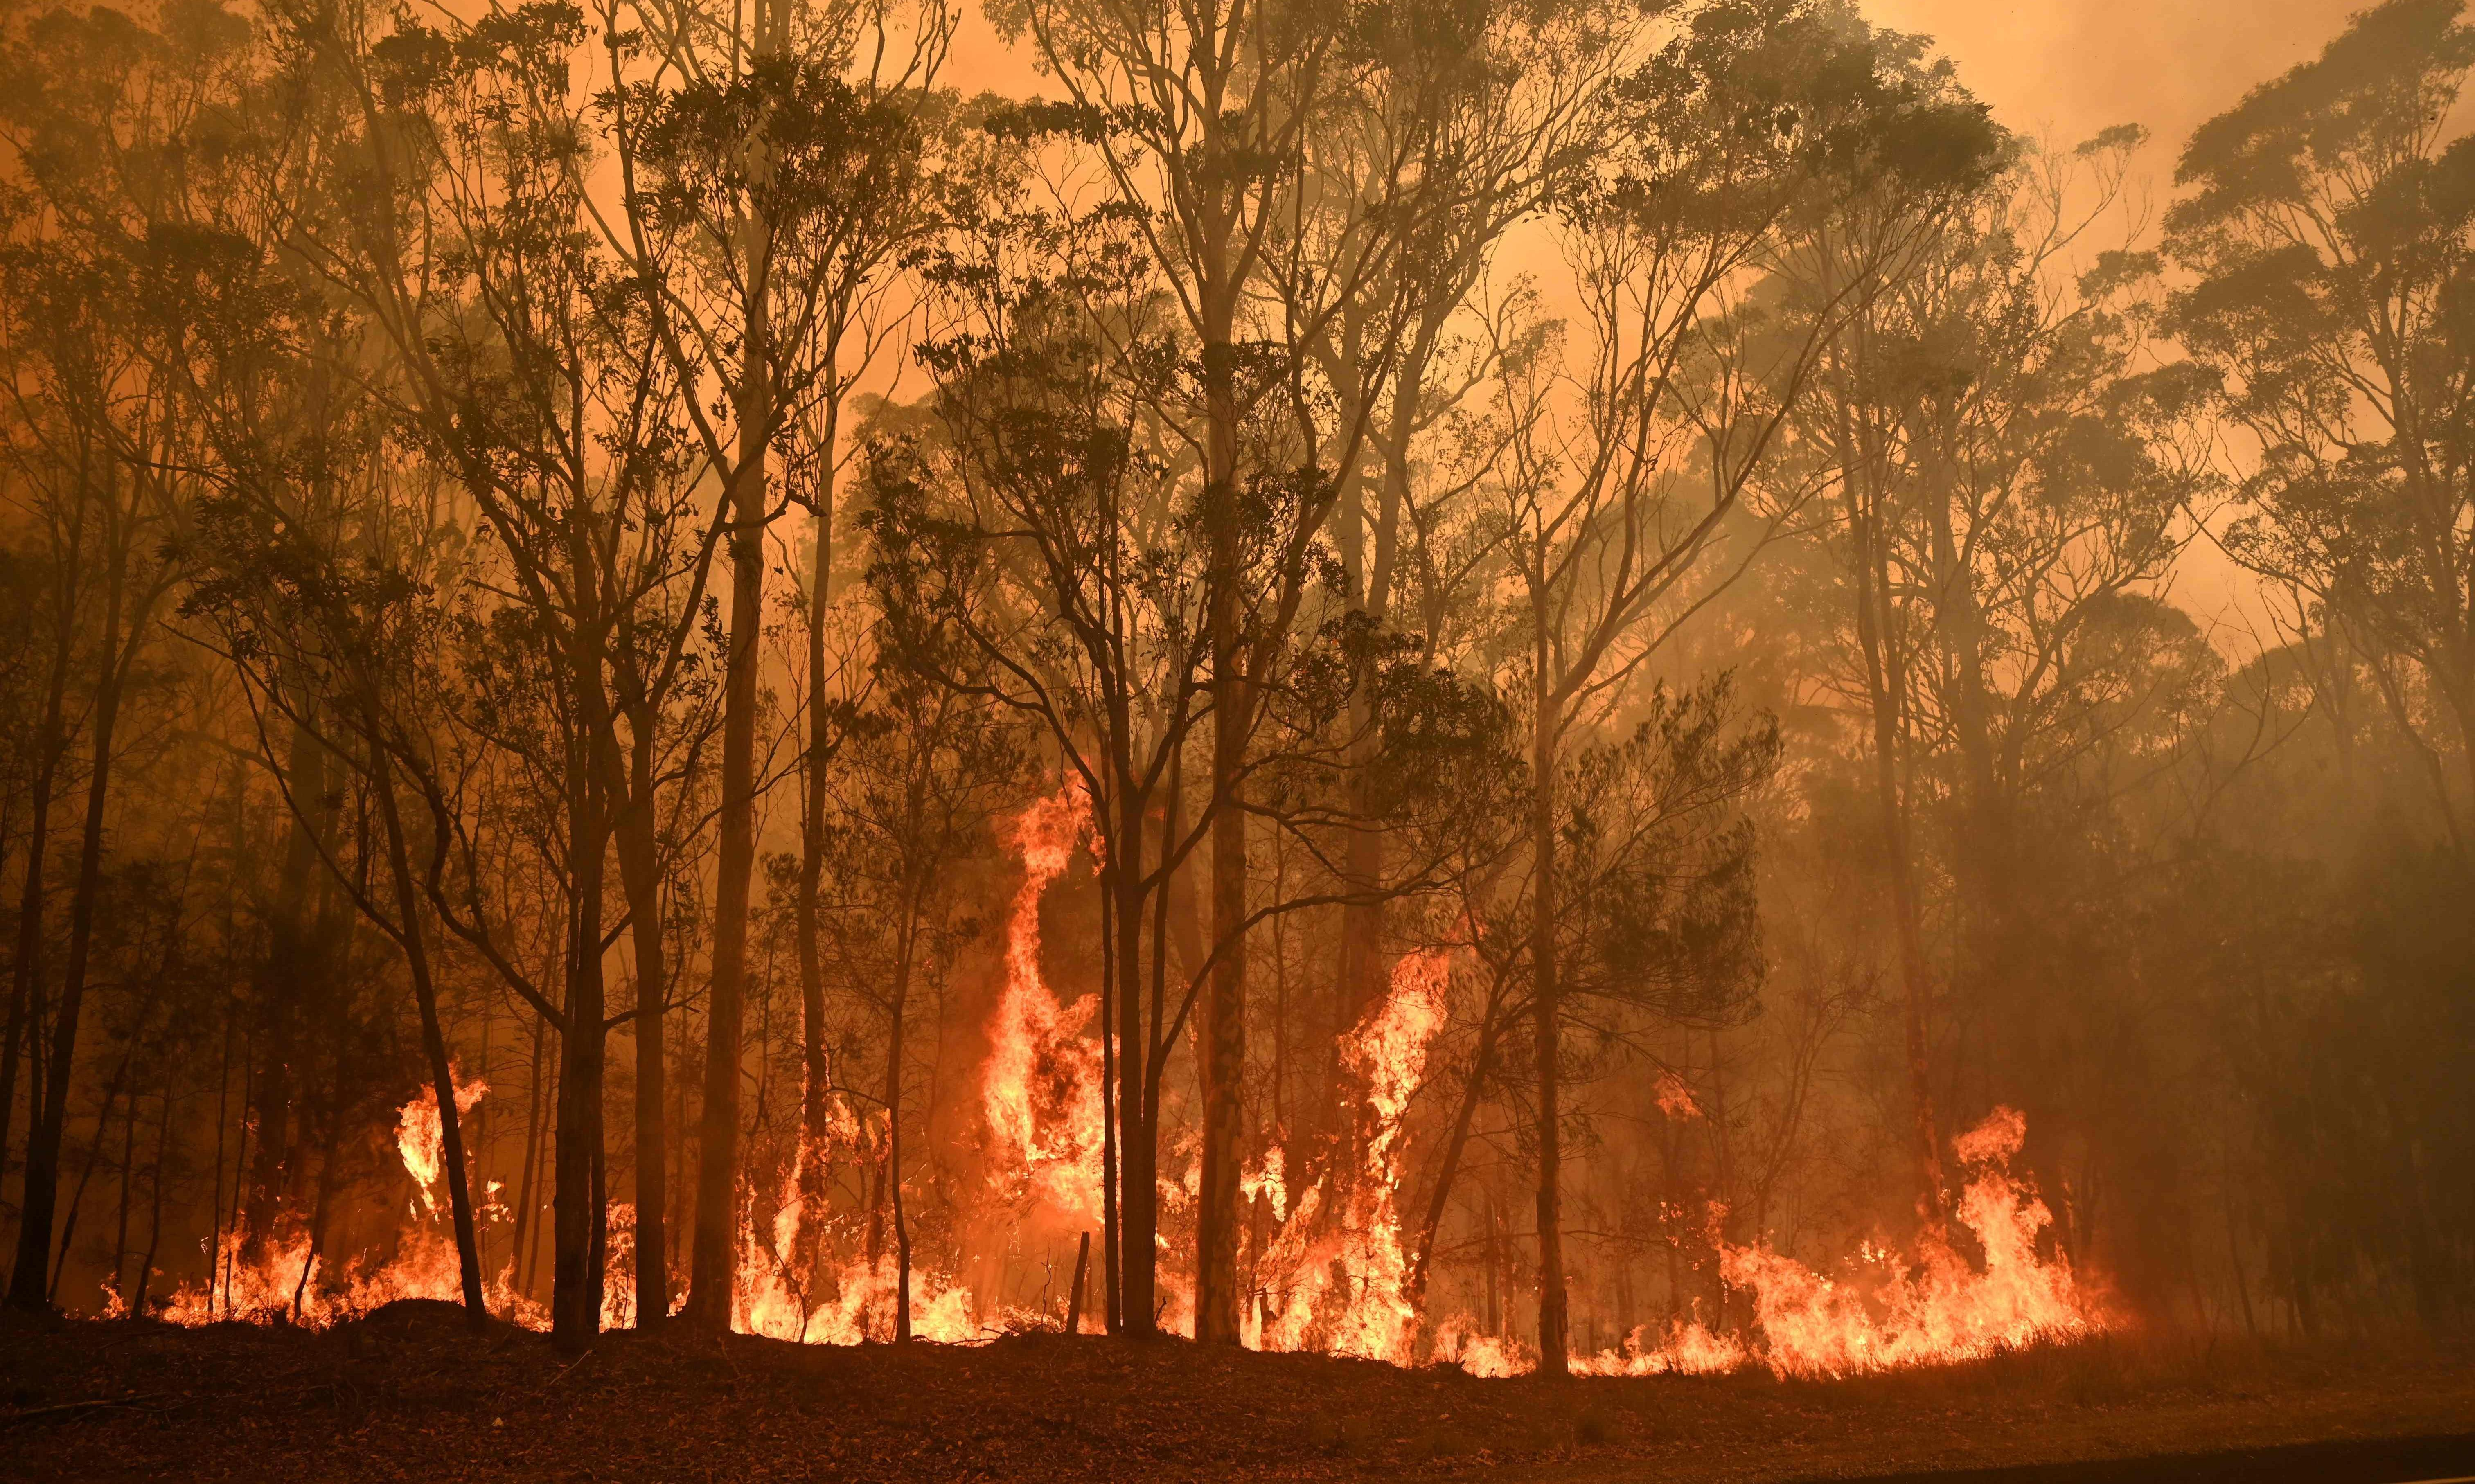 Australia is built on lies, so why would we be surprised about lies about climate change?